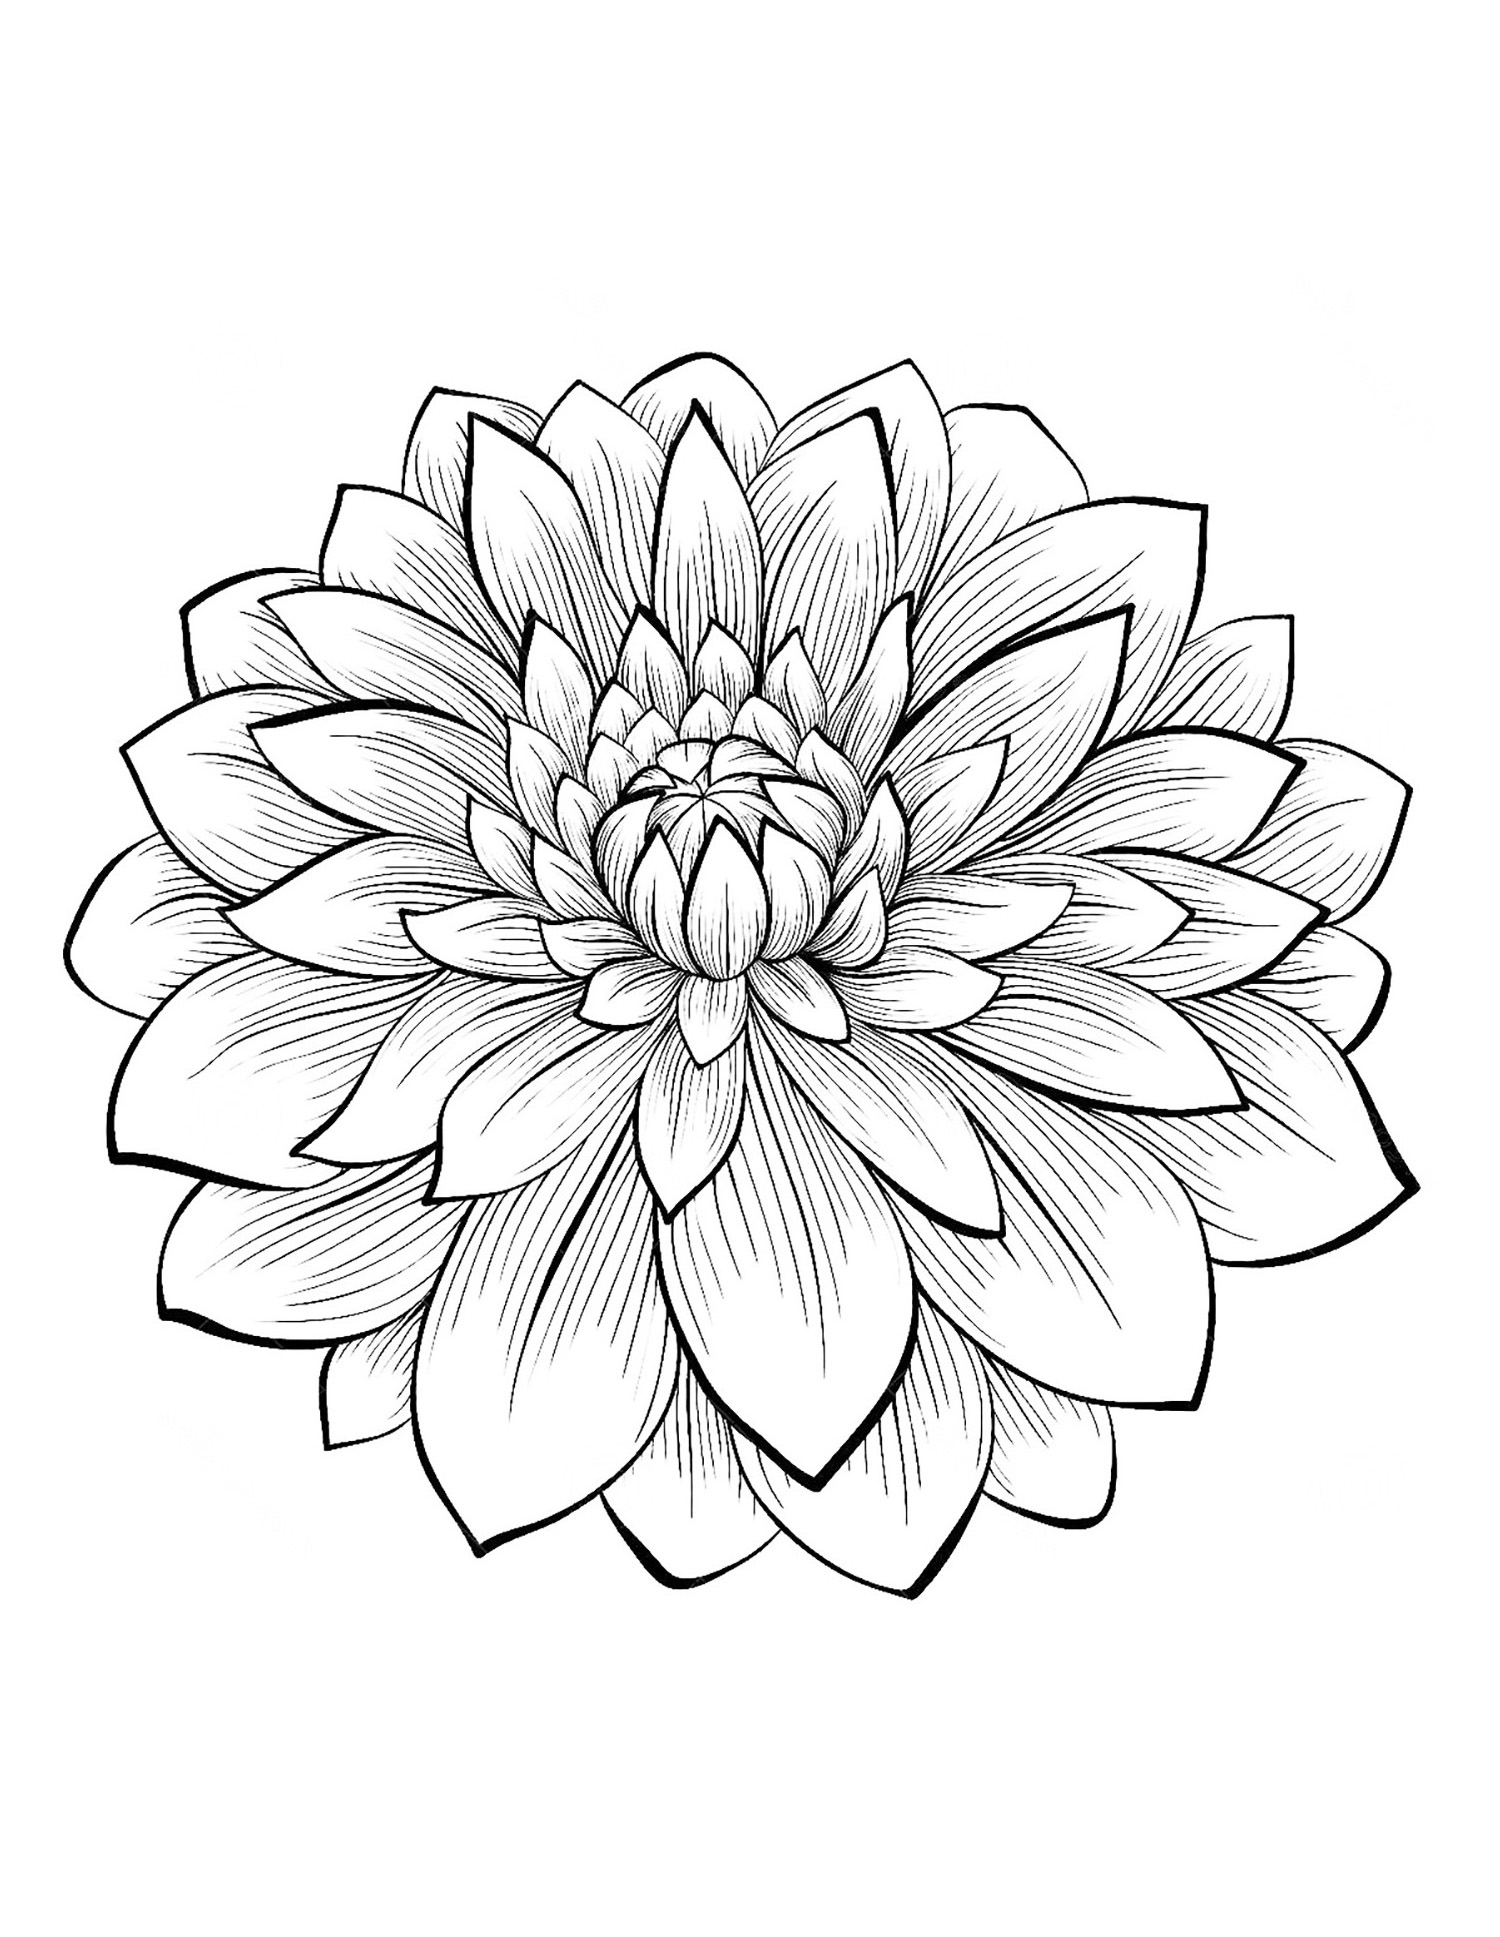 Flowers to print - Flowers Kids Coloring Pages